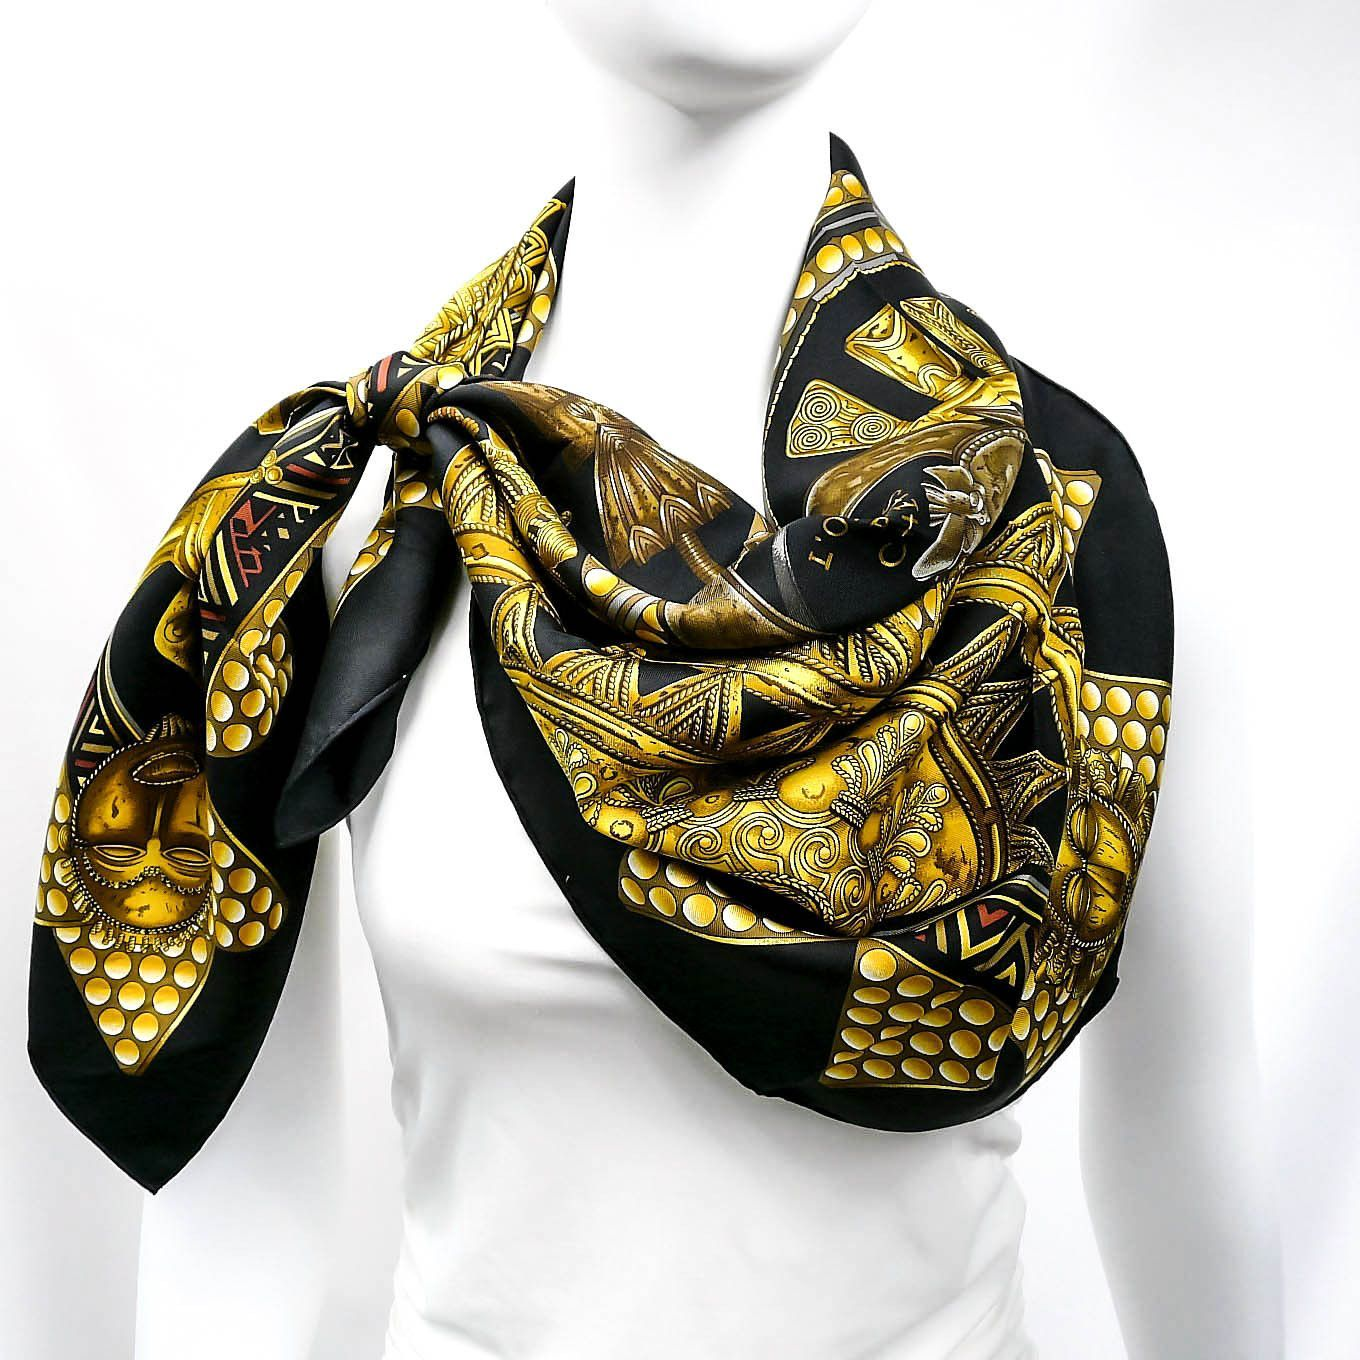 Hermes L'Or des Chefs Black Gold CW 1997 | Black gold, Scarves and ...